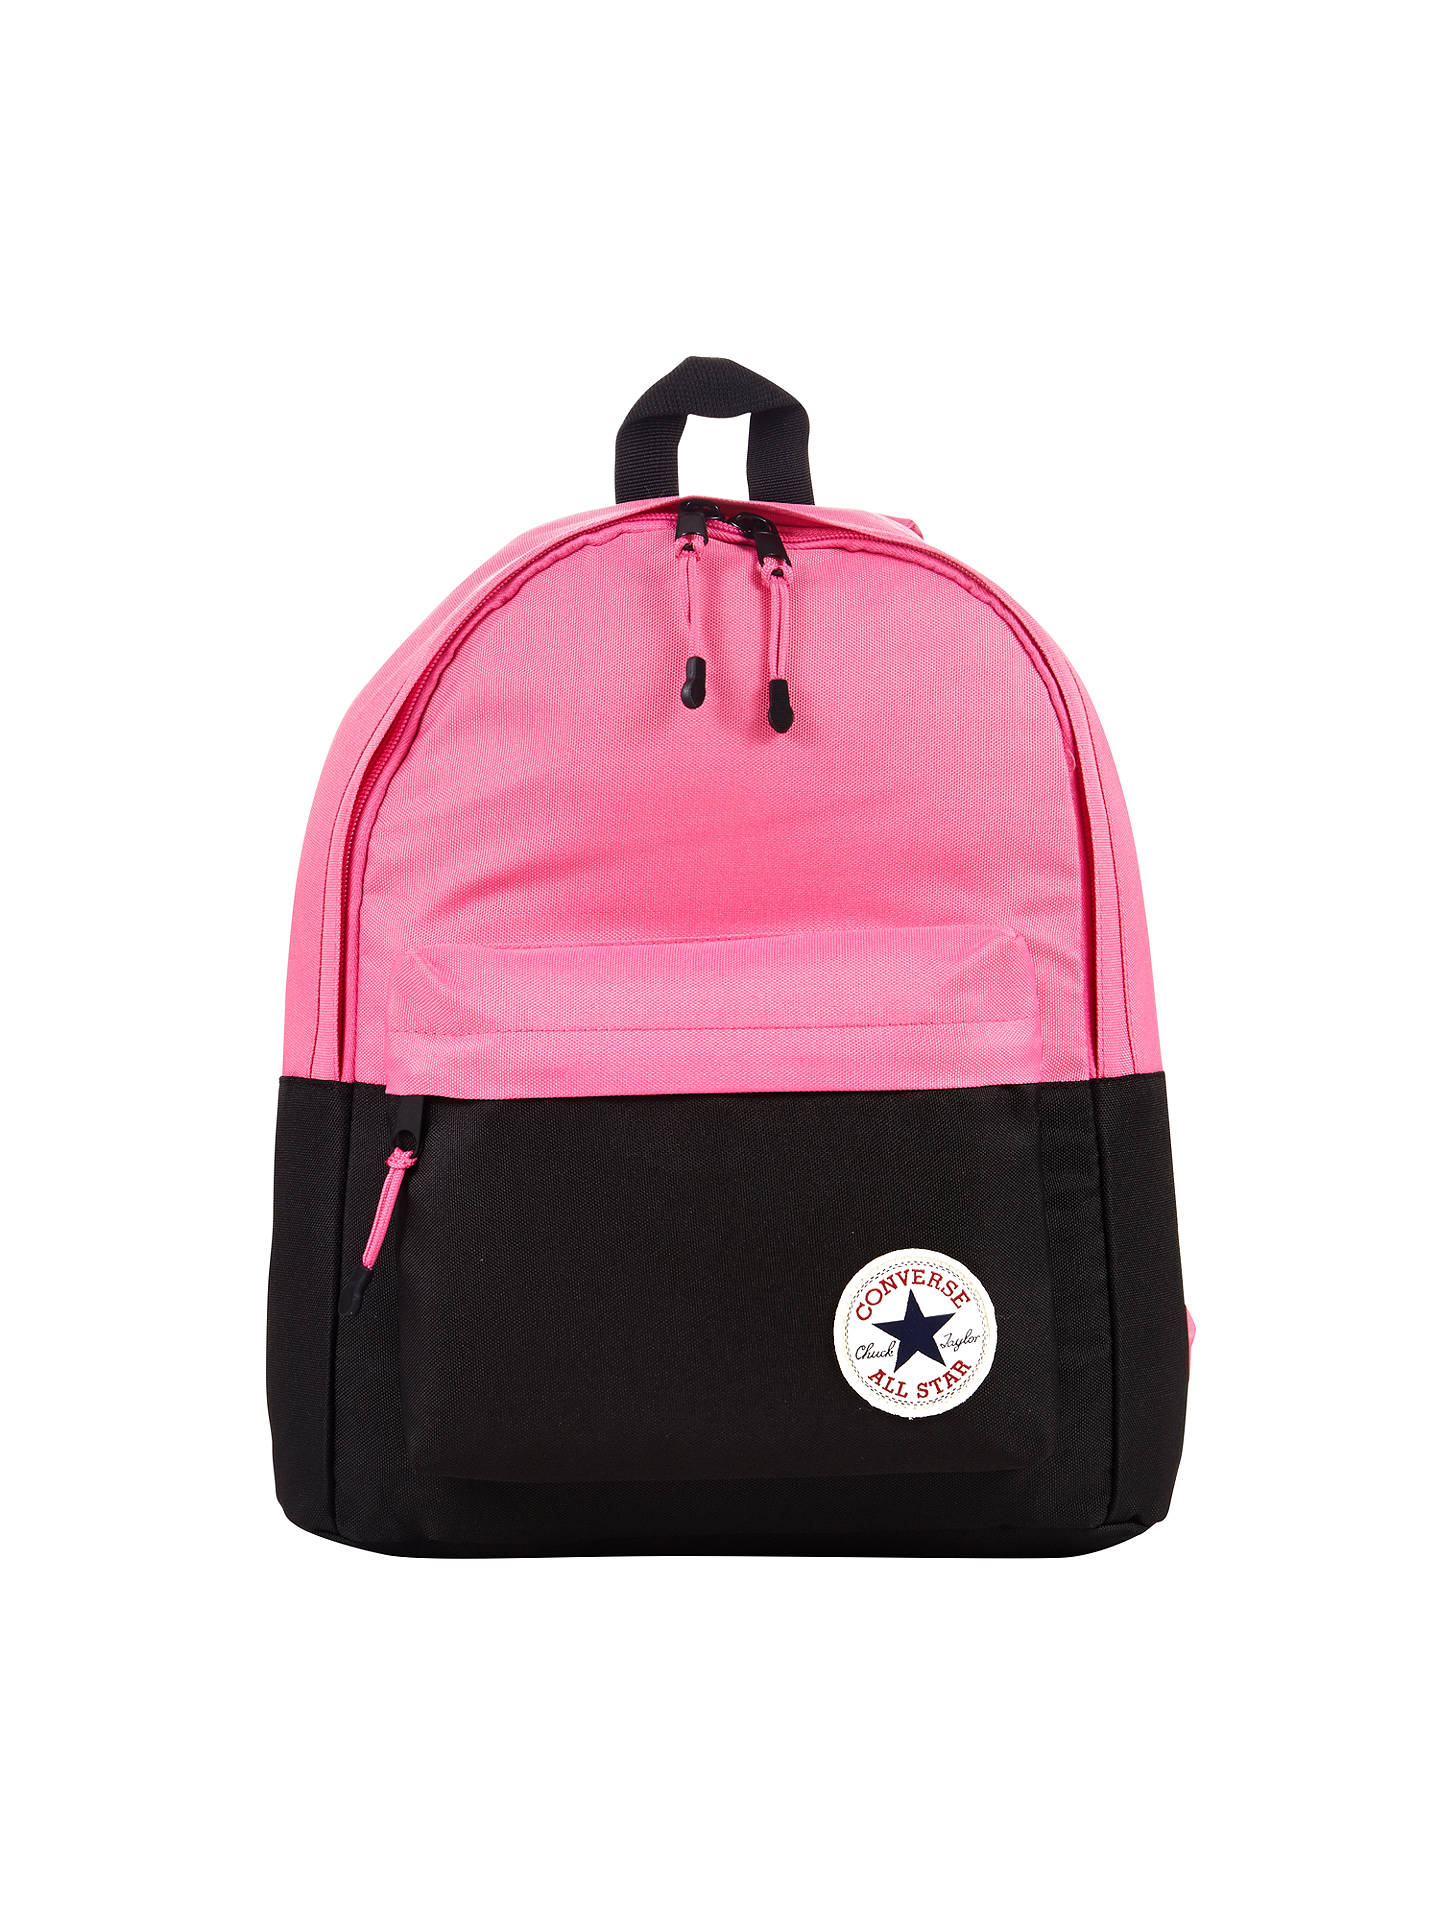 fc91b296756 Buy Converse Children's Colour Block Backpack, Pink/Black, One Size Online  at johnlewis ...